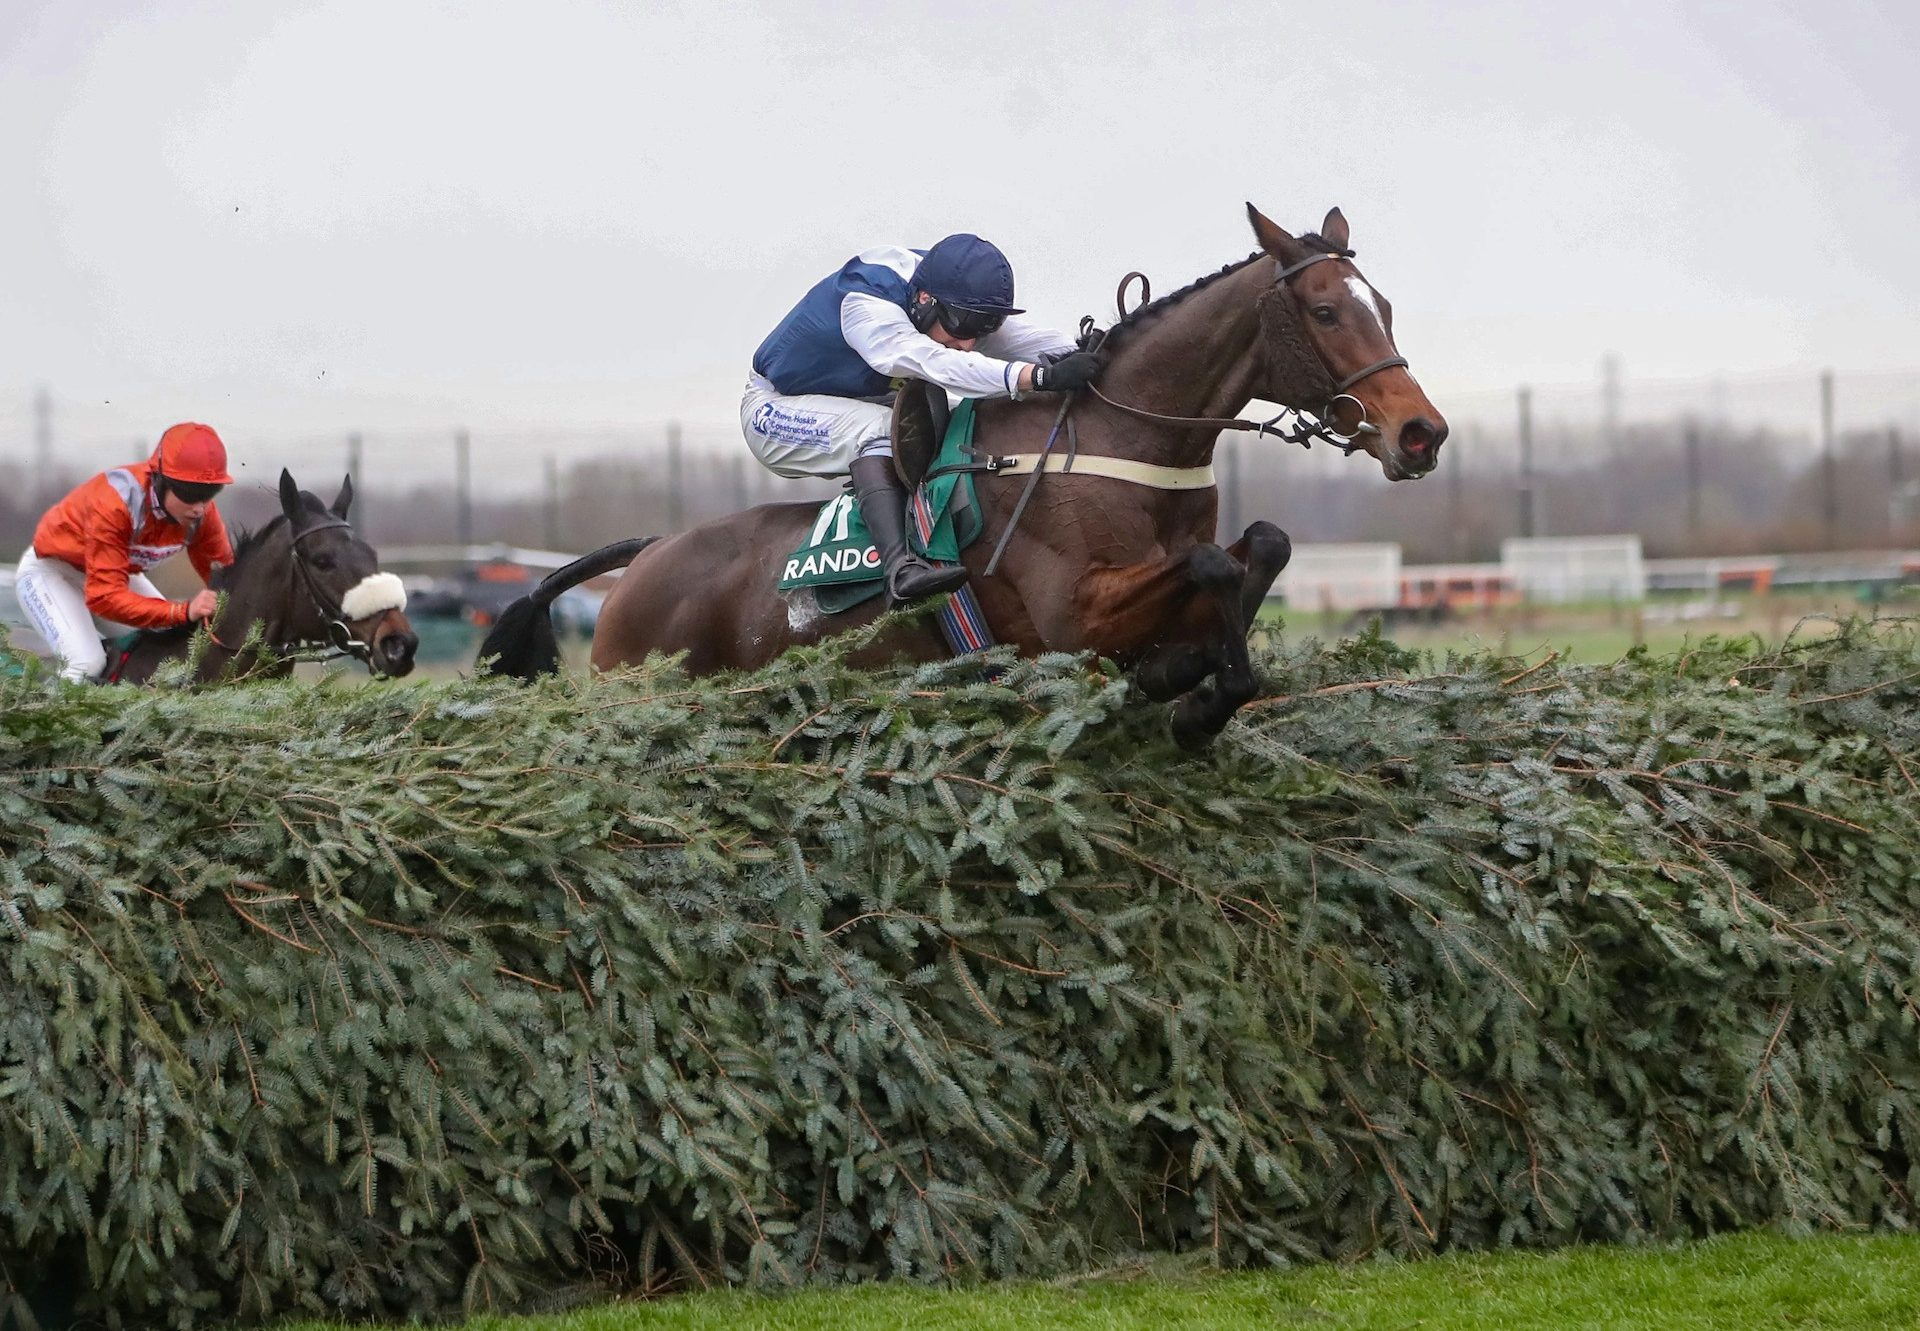 Walk In The Mill (Walk In The Park) winning the Gr.3 Becher Handicap Chase at Aintree